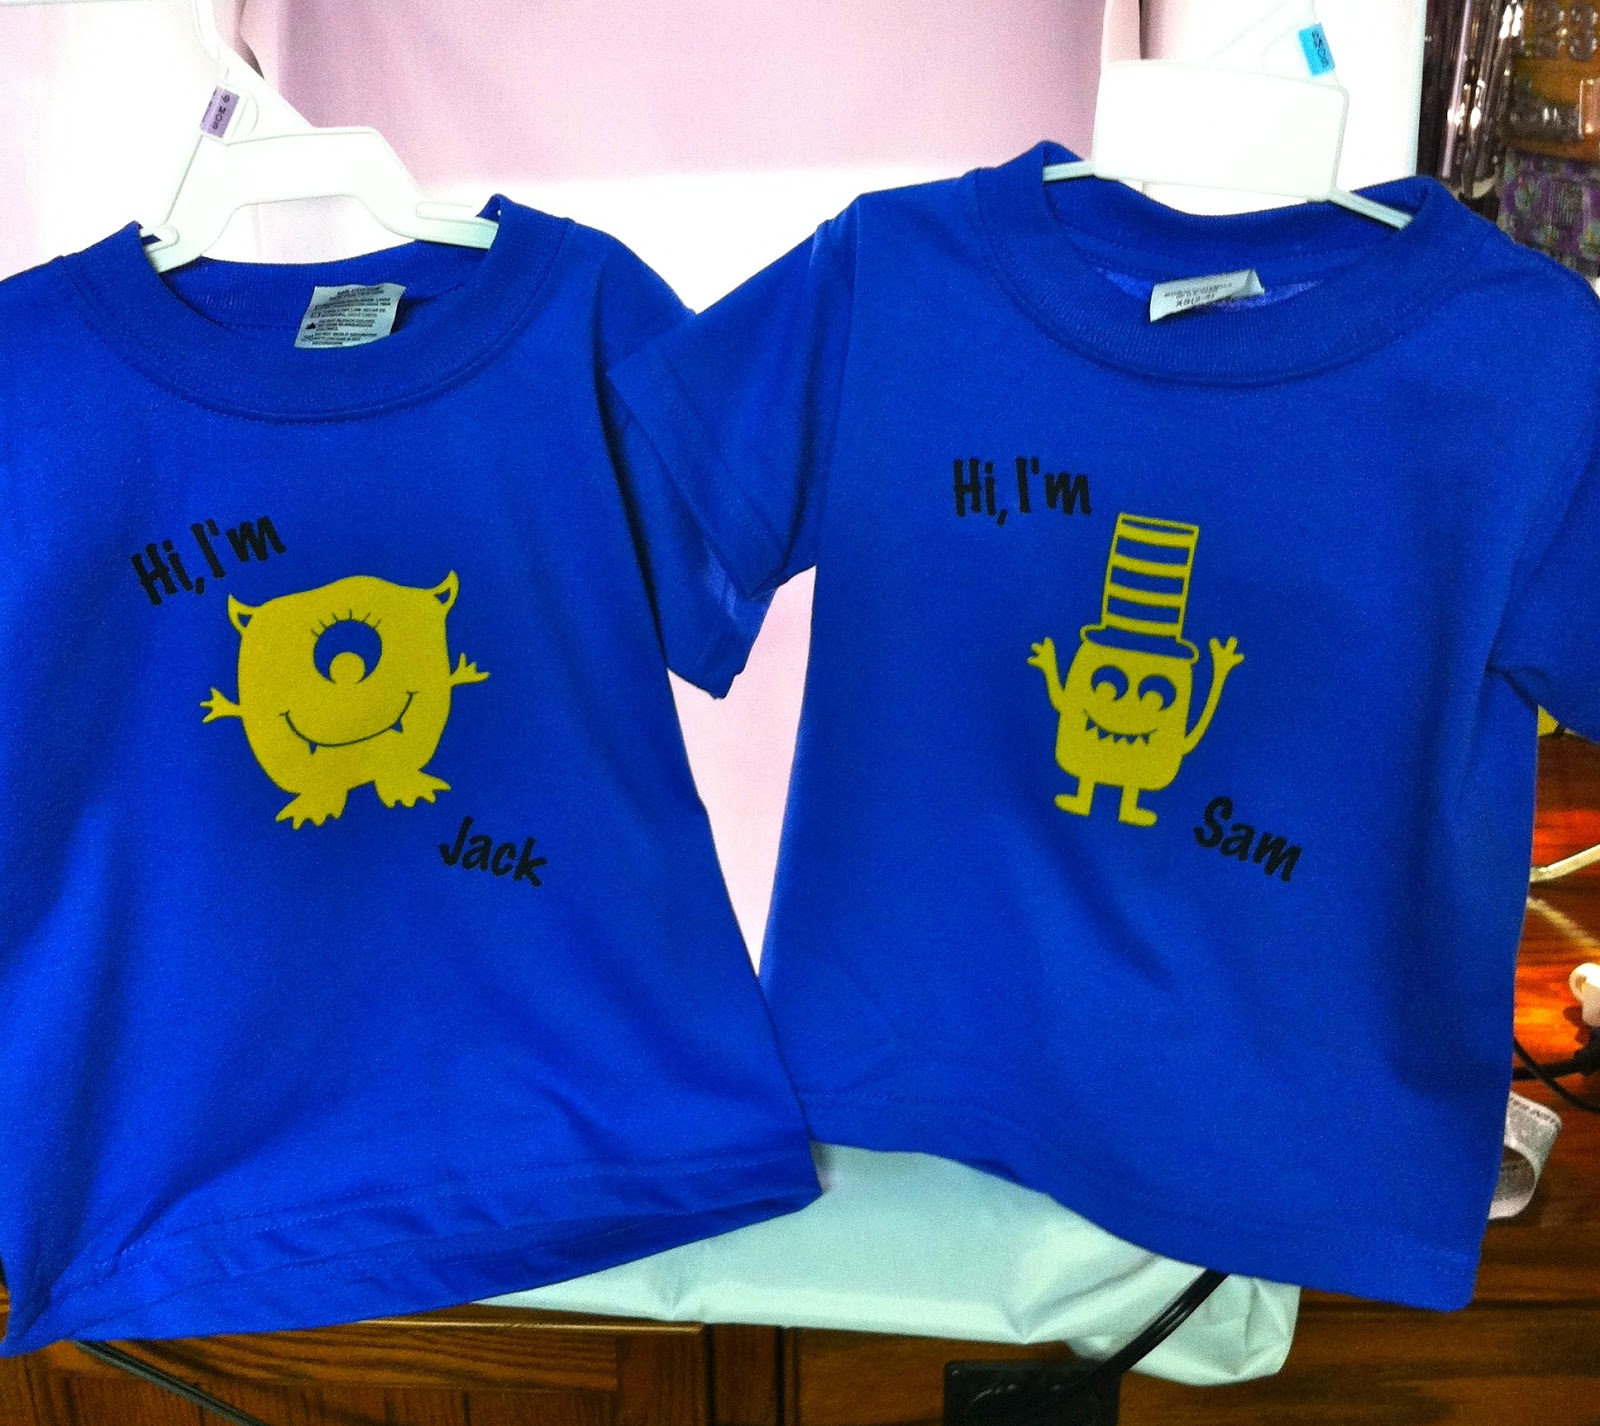 I Created As A Birthday Gift For 3 Year Old Twins Got The Idea From Shirts Friend Of My Moms Had Made Twin Brothers When They Were Little